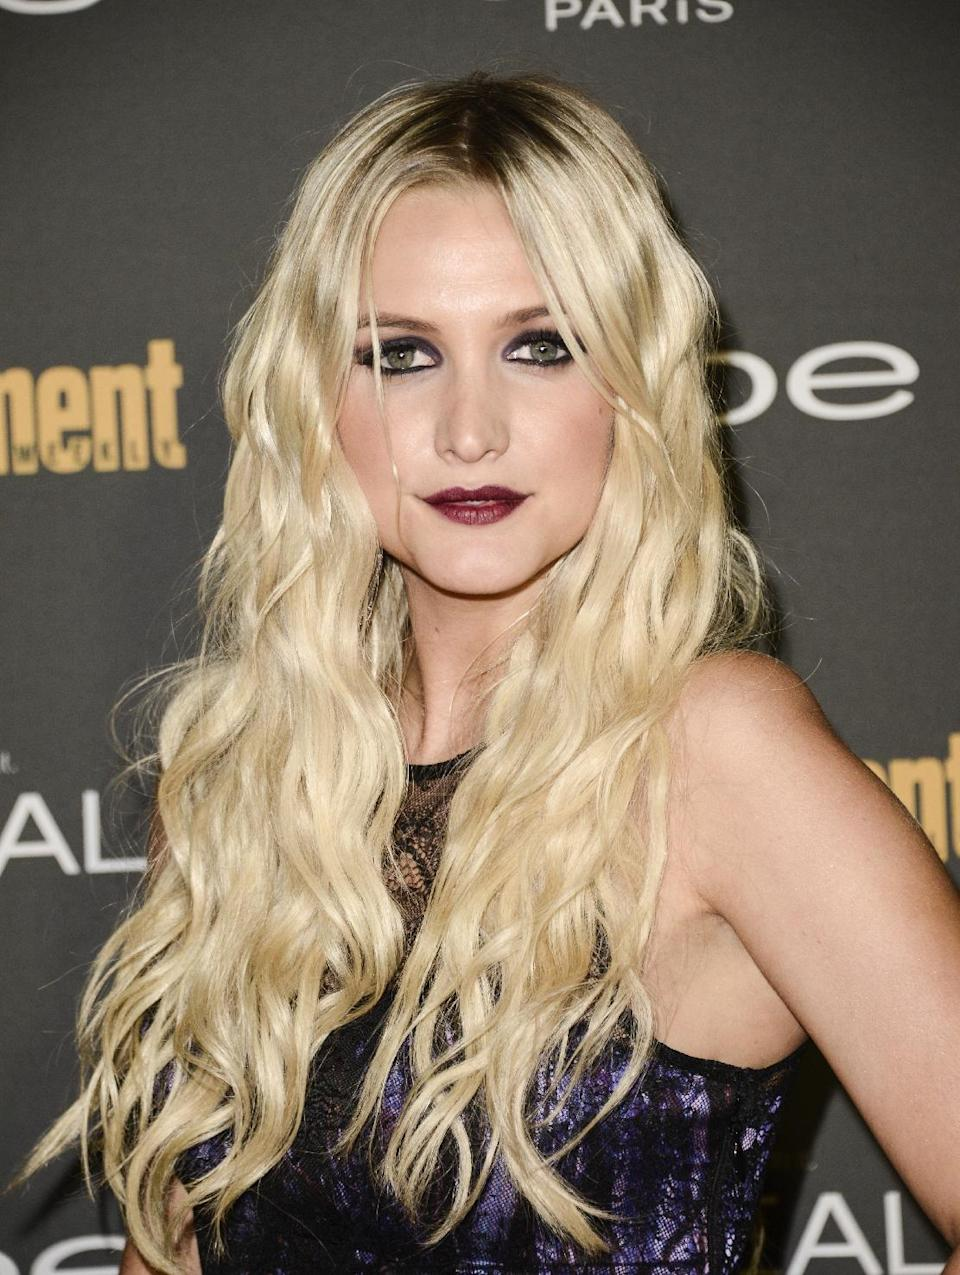 Singer Ashlee Simpson arrives at the 2013 Entertainment Weekly Pre-Emmy Party at Fig & Olive on Friday, Sept. 20, 2013 in Los Angeles. (Photo by Dan Steinberg/Invision/AP)